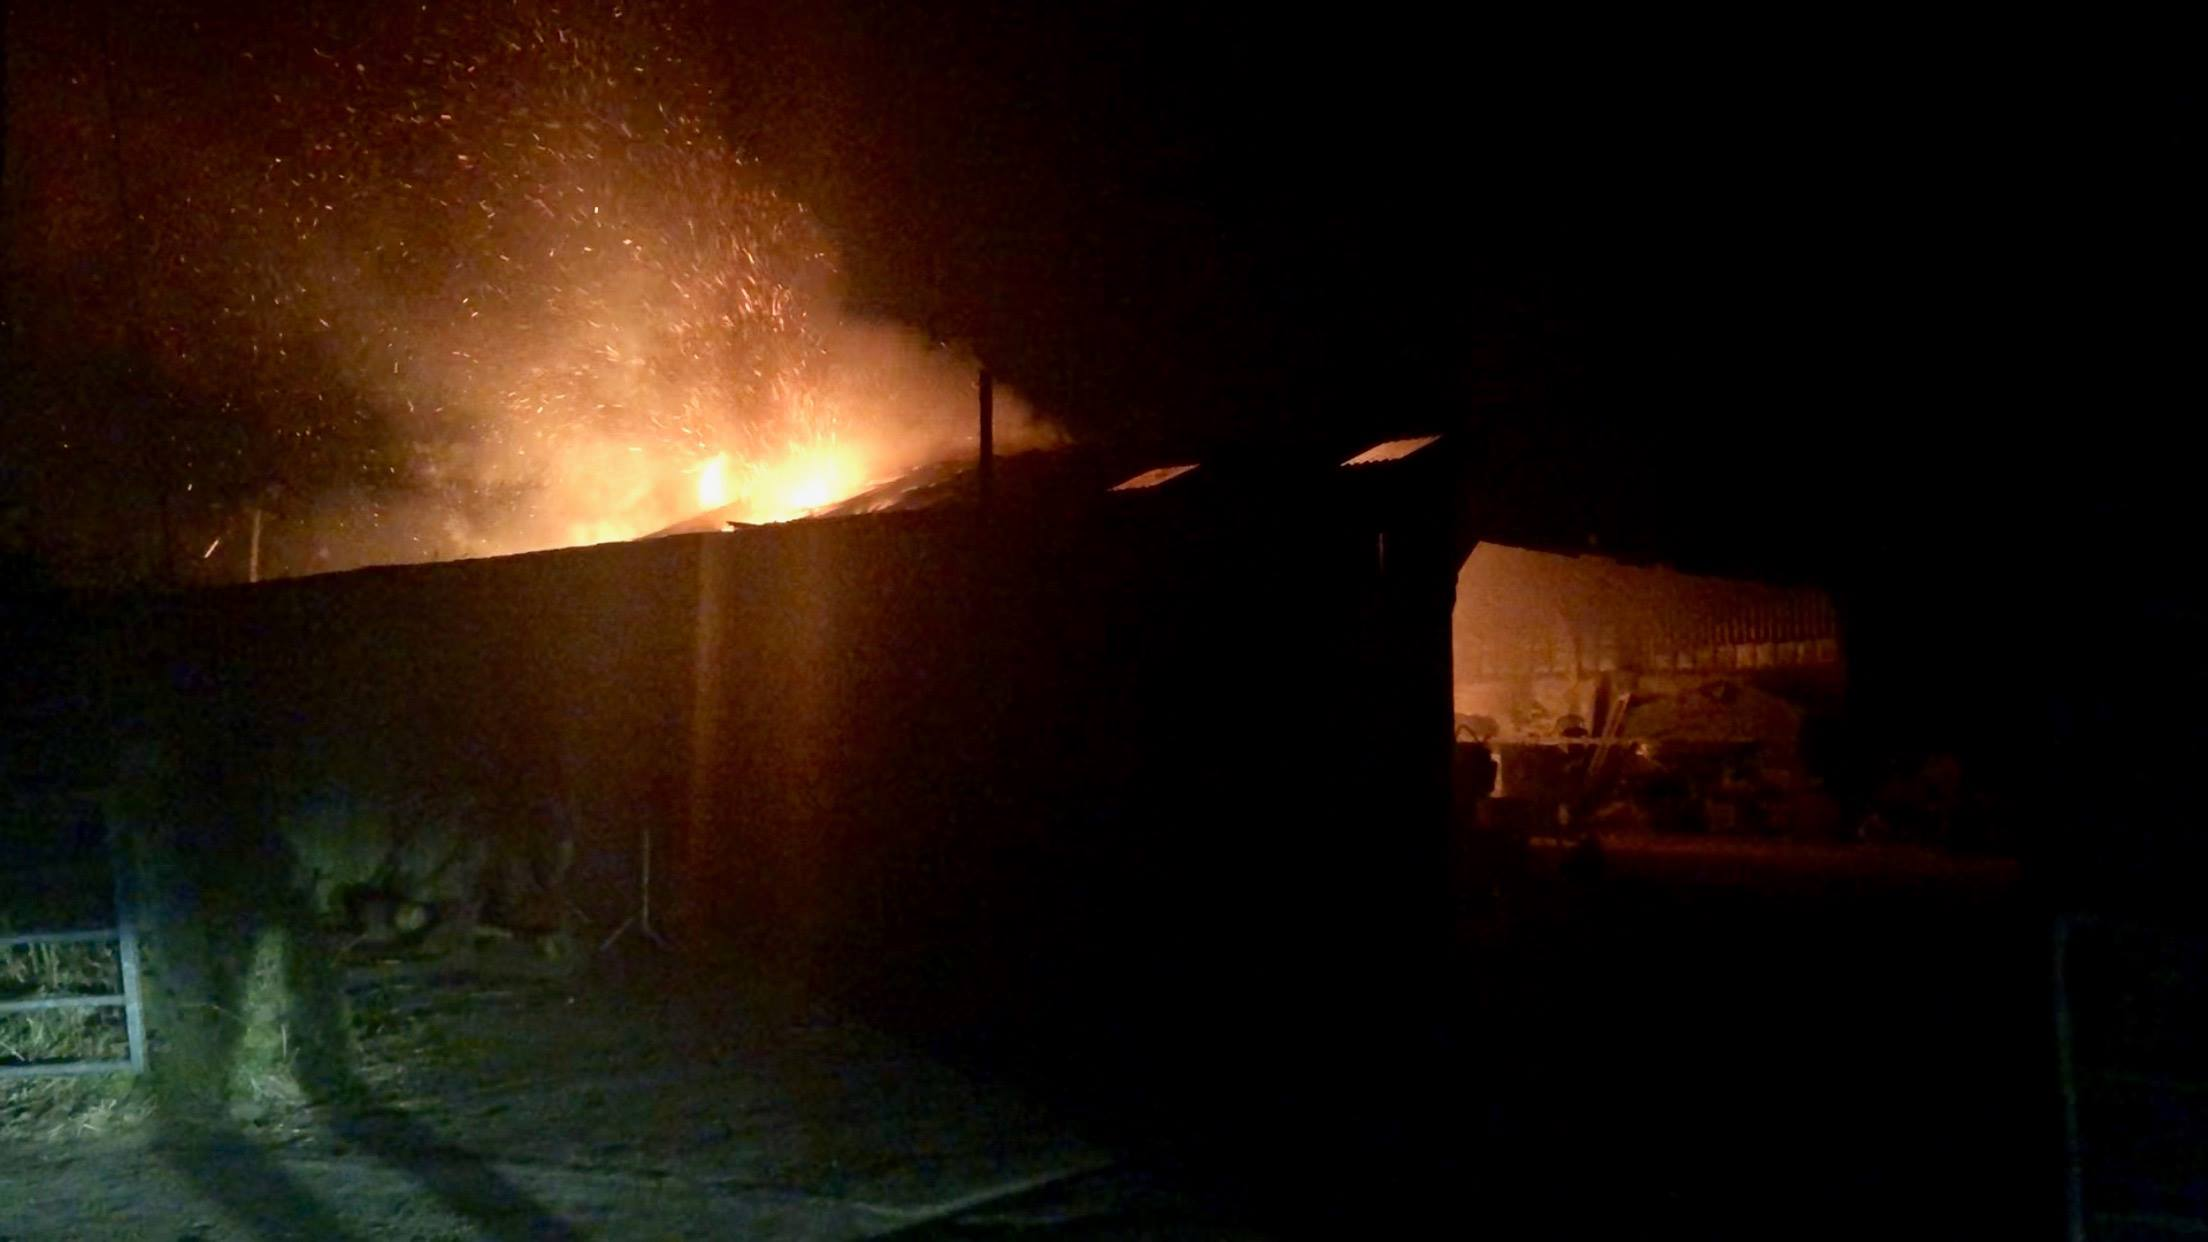 Huge barn fire spotted on outskirts of Falmouth